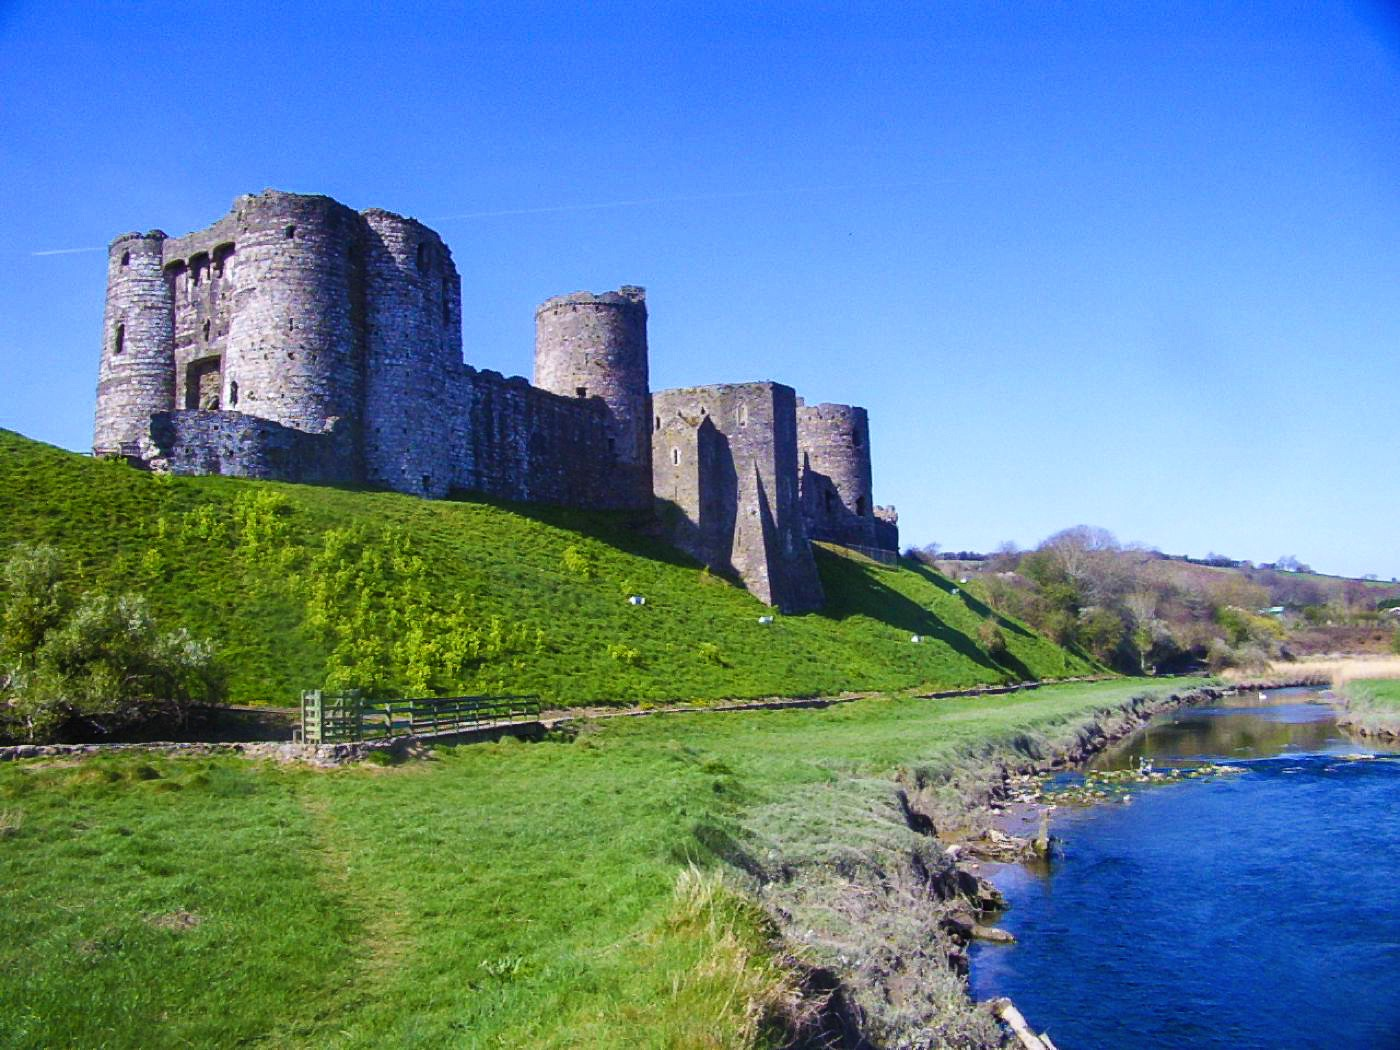 16 Fairytale Castles You Must See in Wales! Beaumaris Castle Caernarfon Castle Caerphilly Castle Carreg Cennen Castle Castell Coch Chepstow Castle Conwy Castle Criccieth Castle Denbigh Castle Dolwyddelan Castle Harlech Castle Kidwelly Castle Raglan Castle St Davids Bishop's Palace Tintern Abbey Tretower Court & Castle Weobley Castle (12)